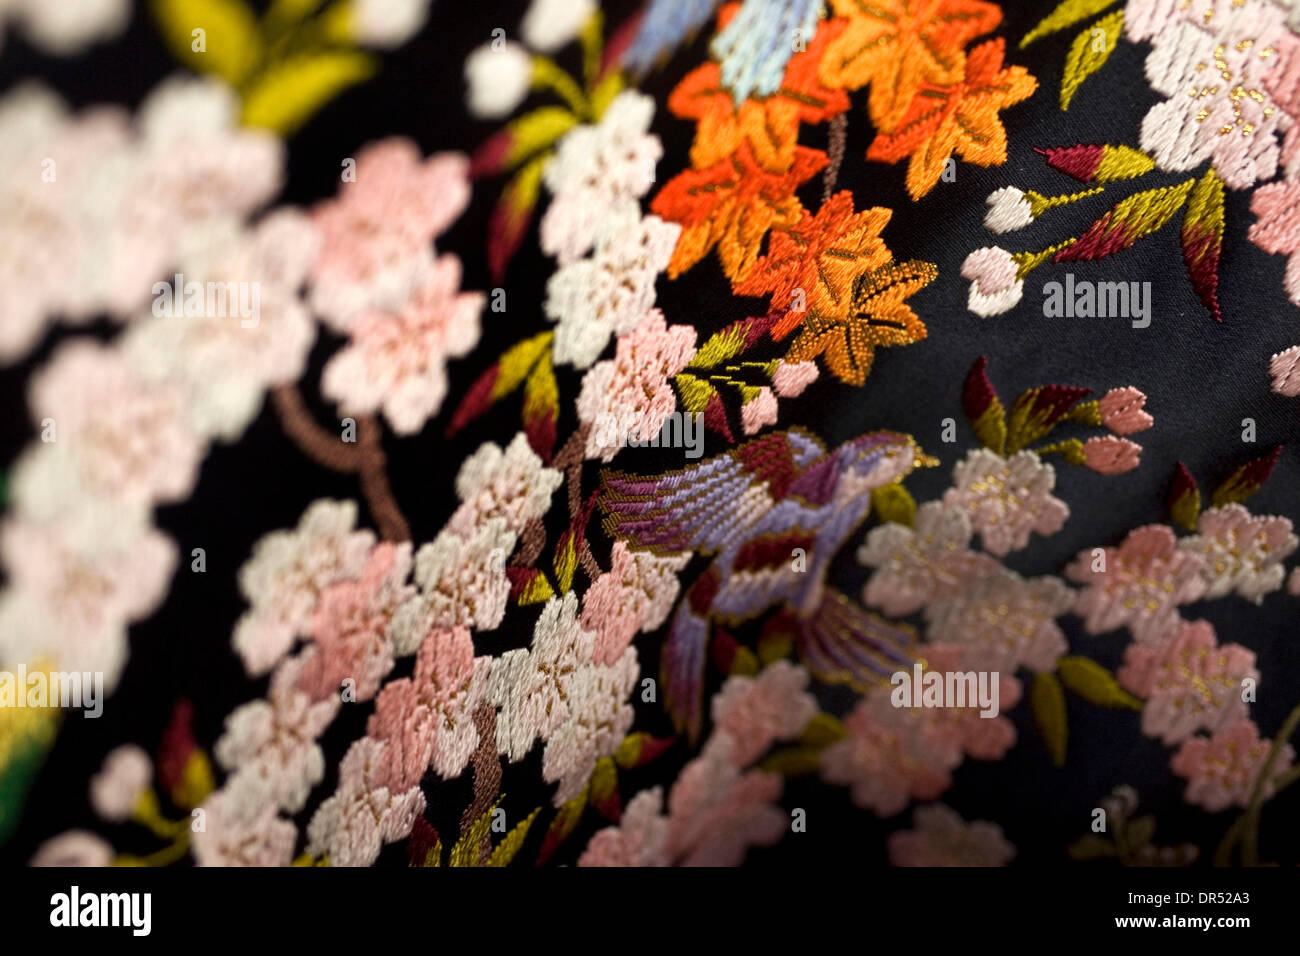 Details of birds and flowers are stitched into silk. Kimonos are the traditional Japanese dress code. However, they are usually worn by older women. Younger adults prefer the modern fashion style. - Stock Image